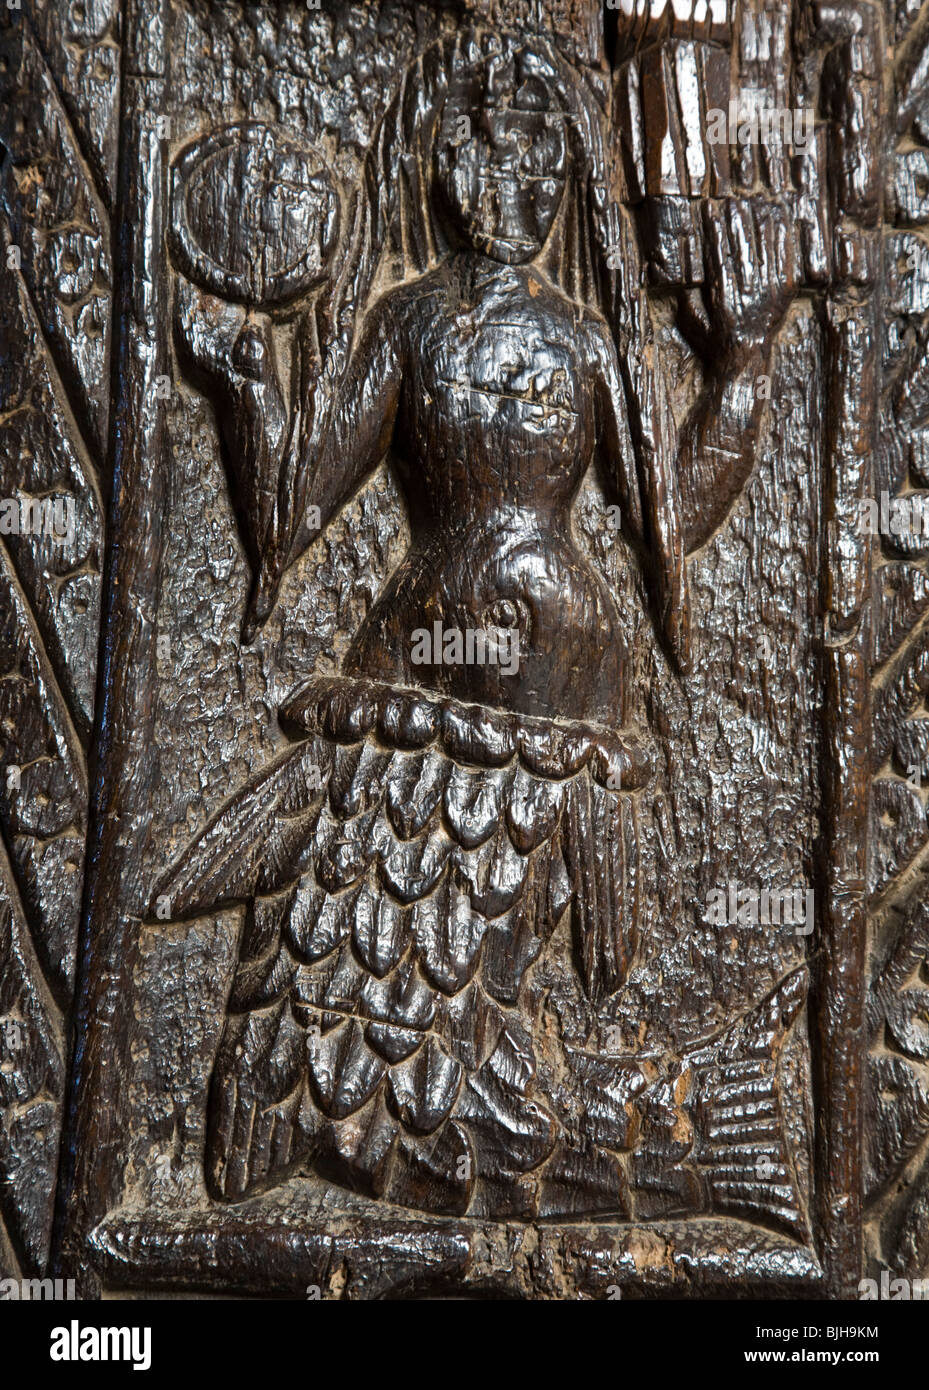 The Mysterious Mermaid Of Zennor Carving In The Church Of